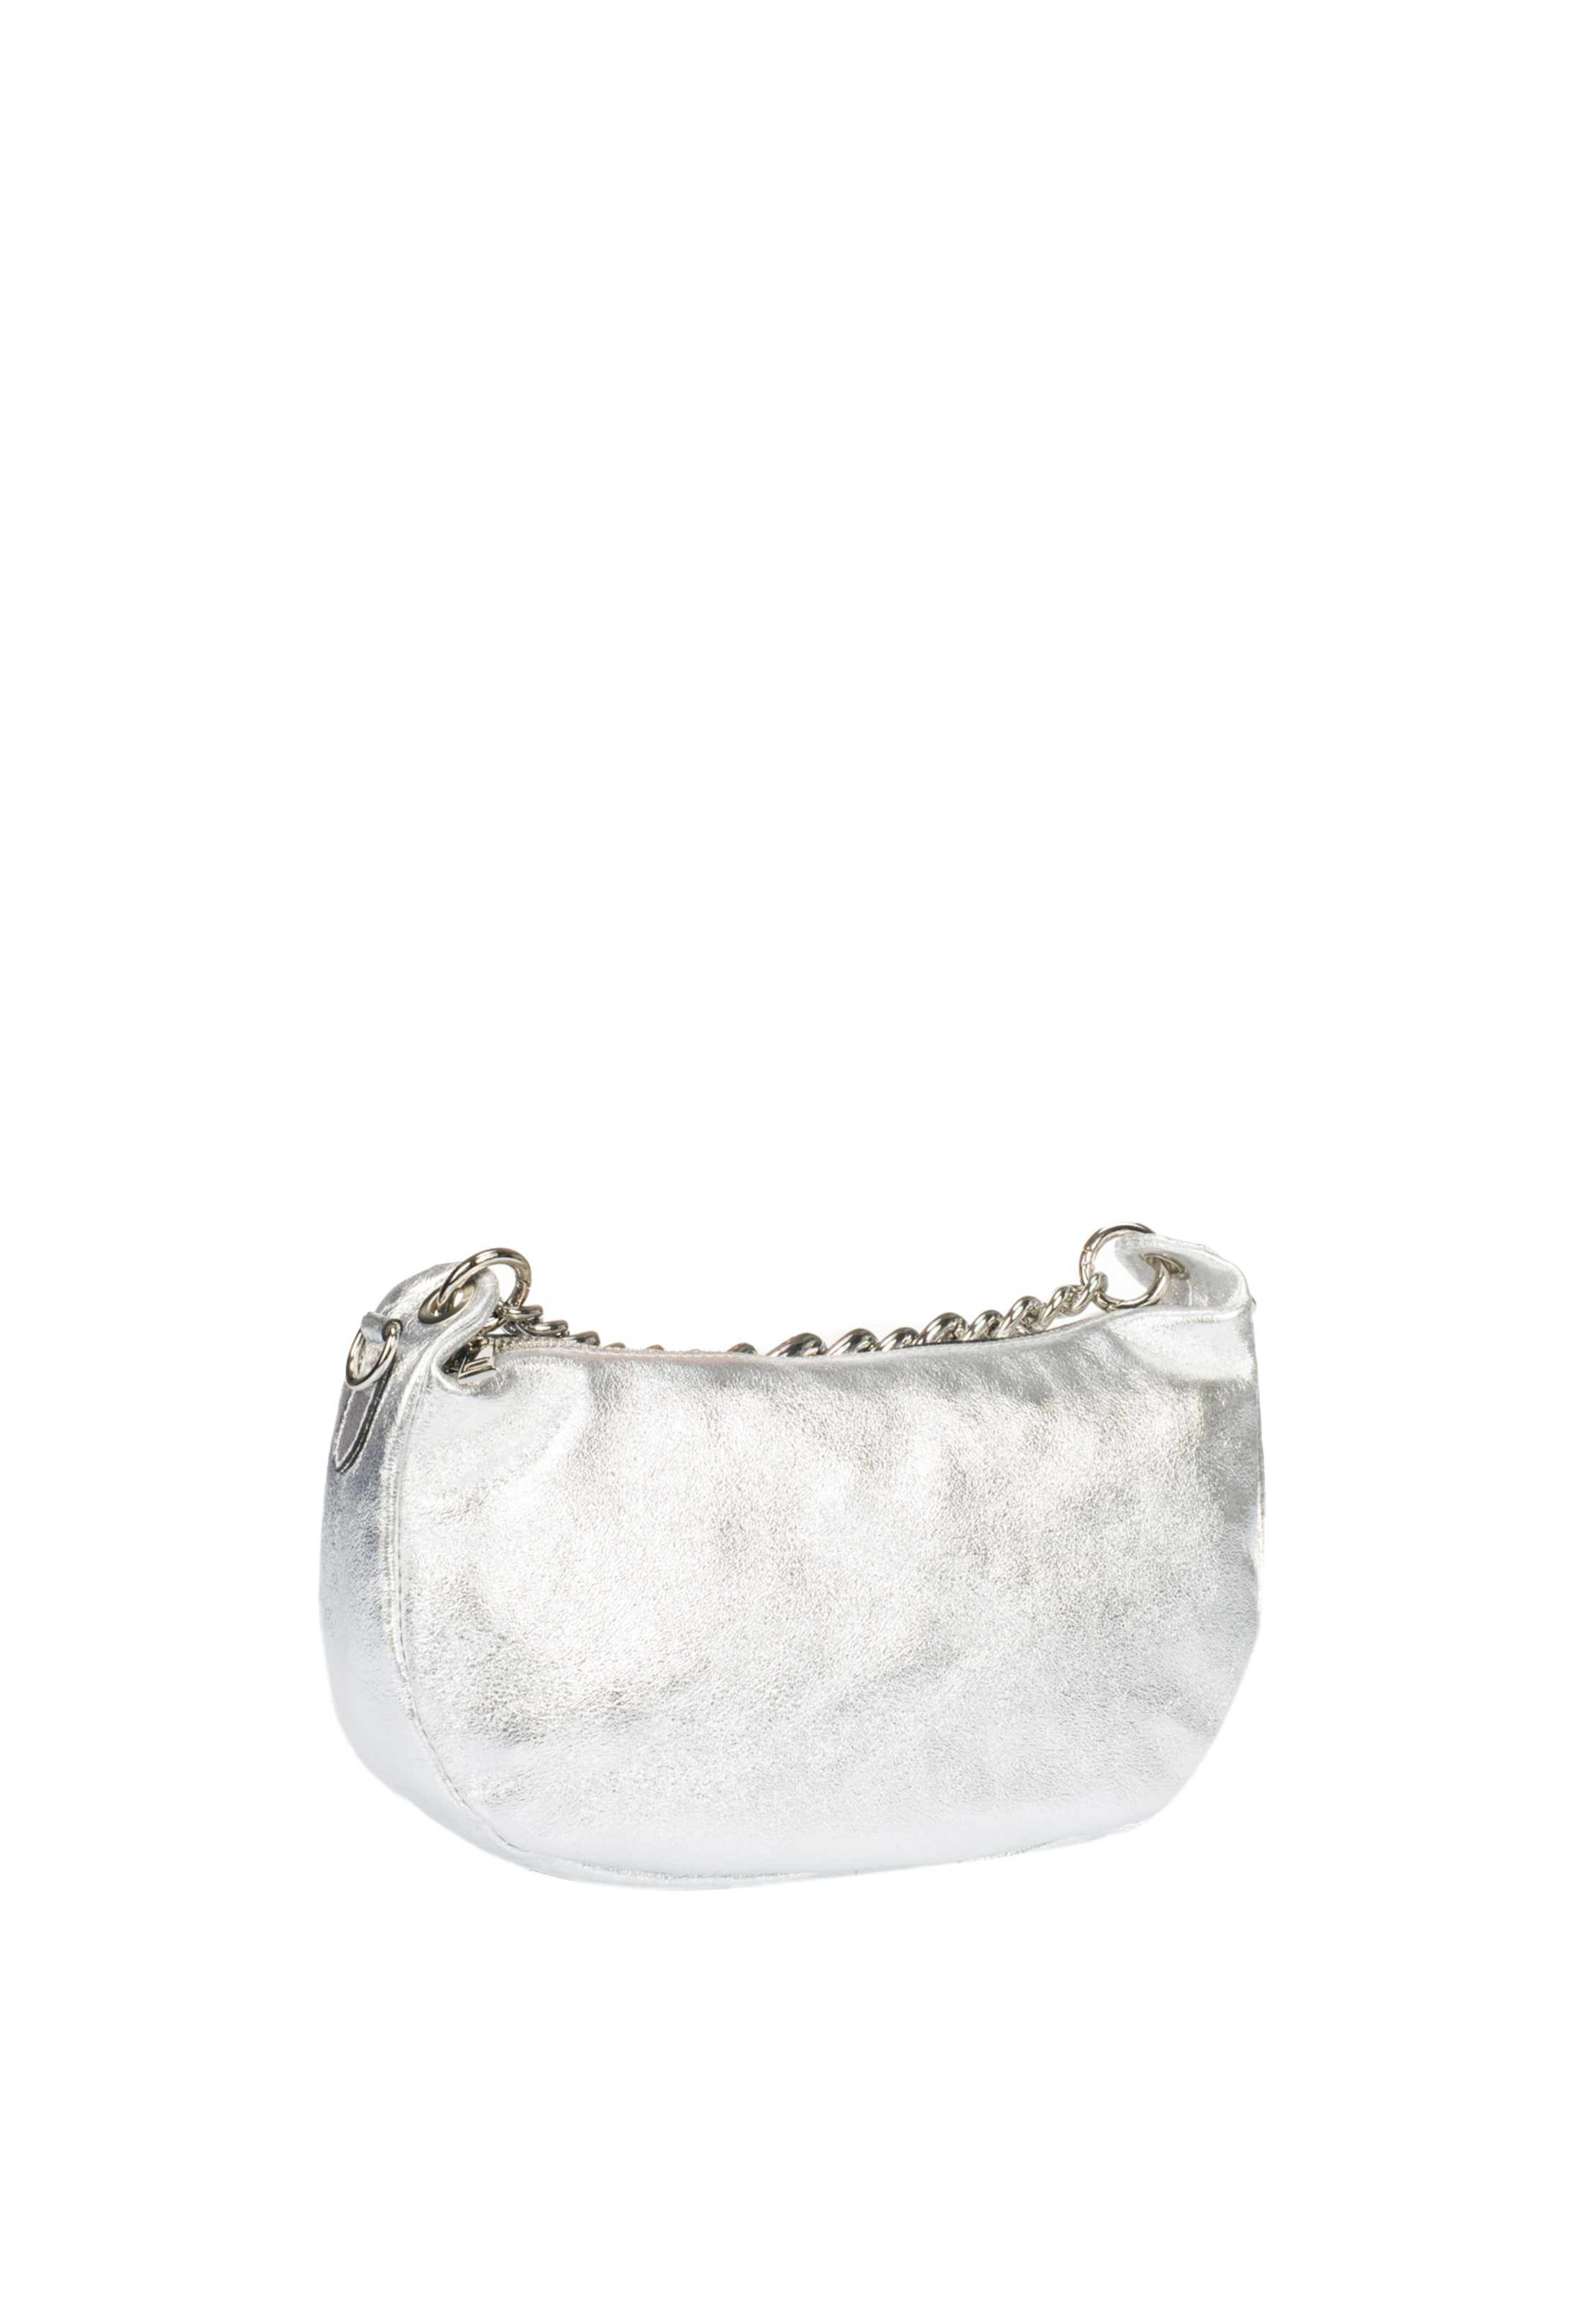 'at Night' In Mymo Abendtasche Silber N8n0XPkZwO